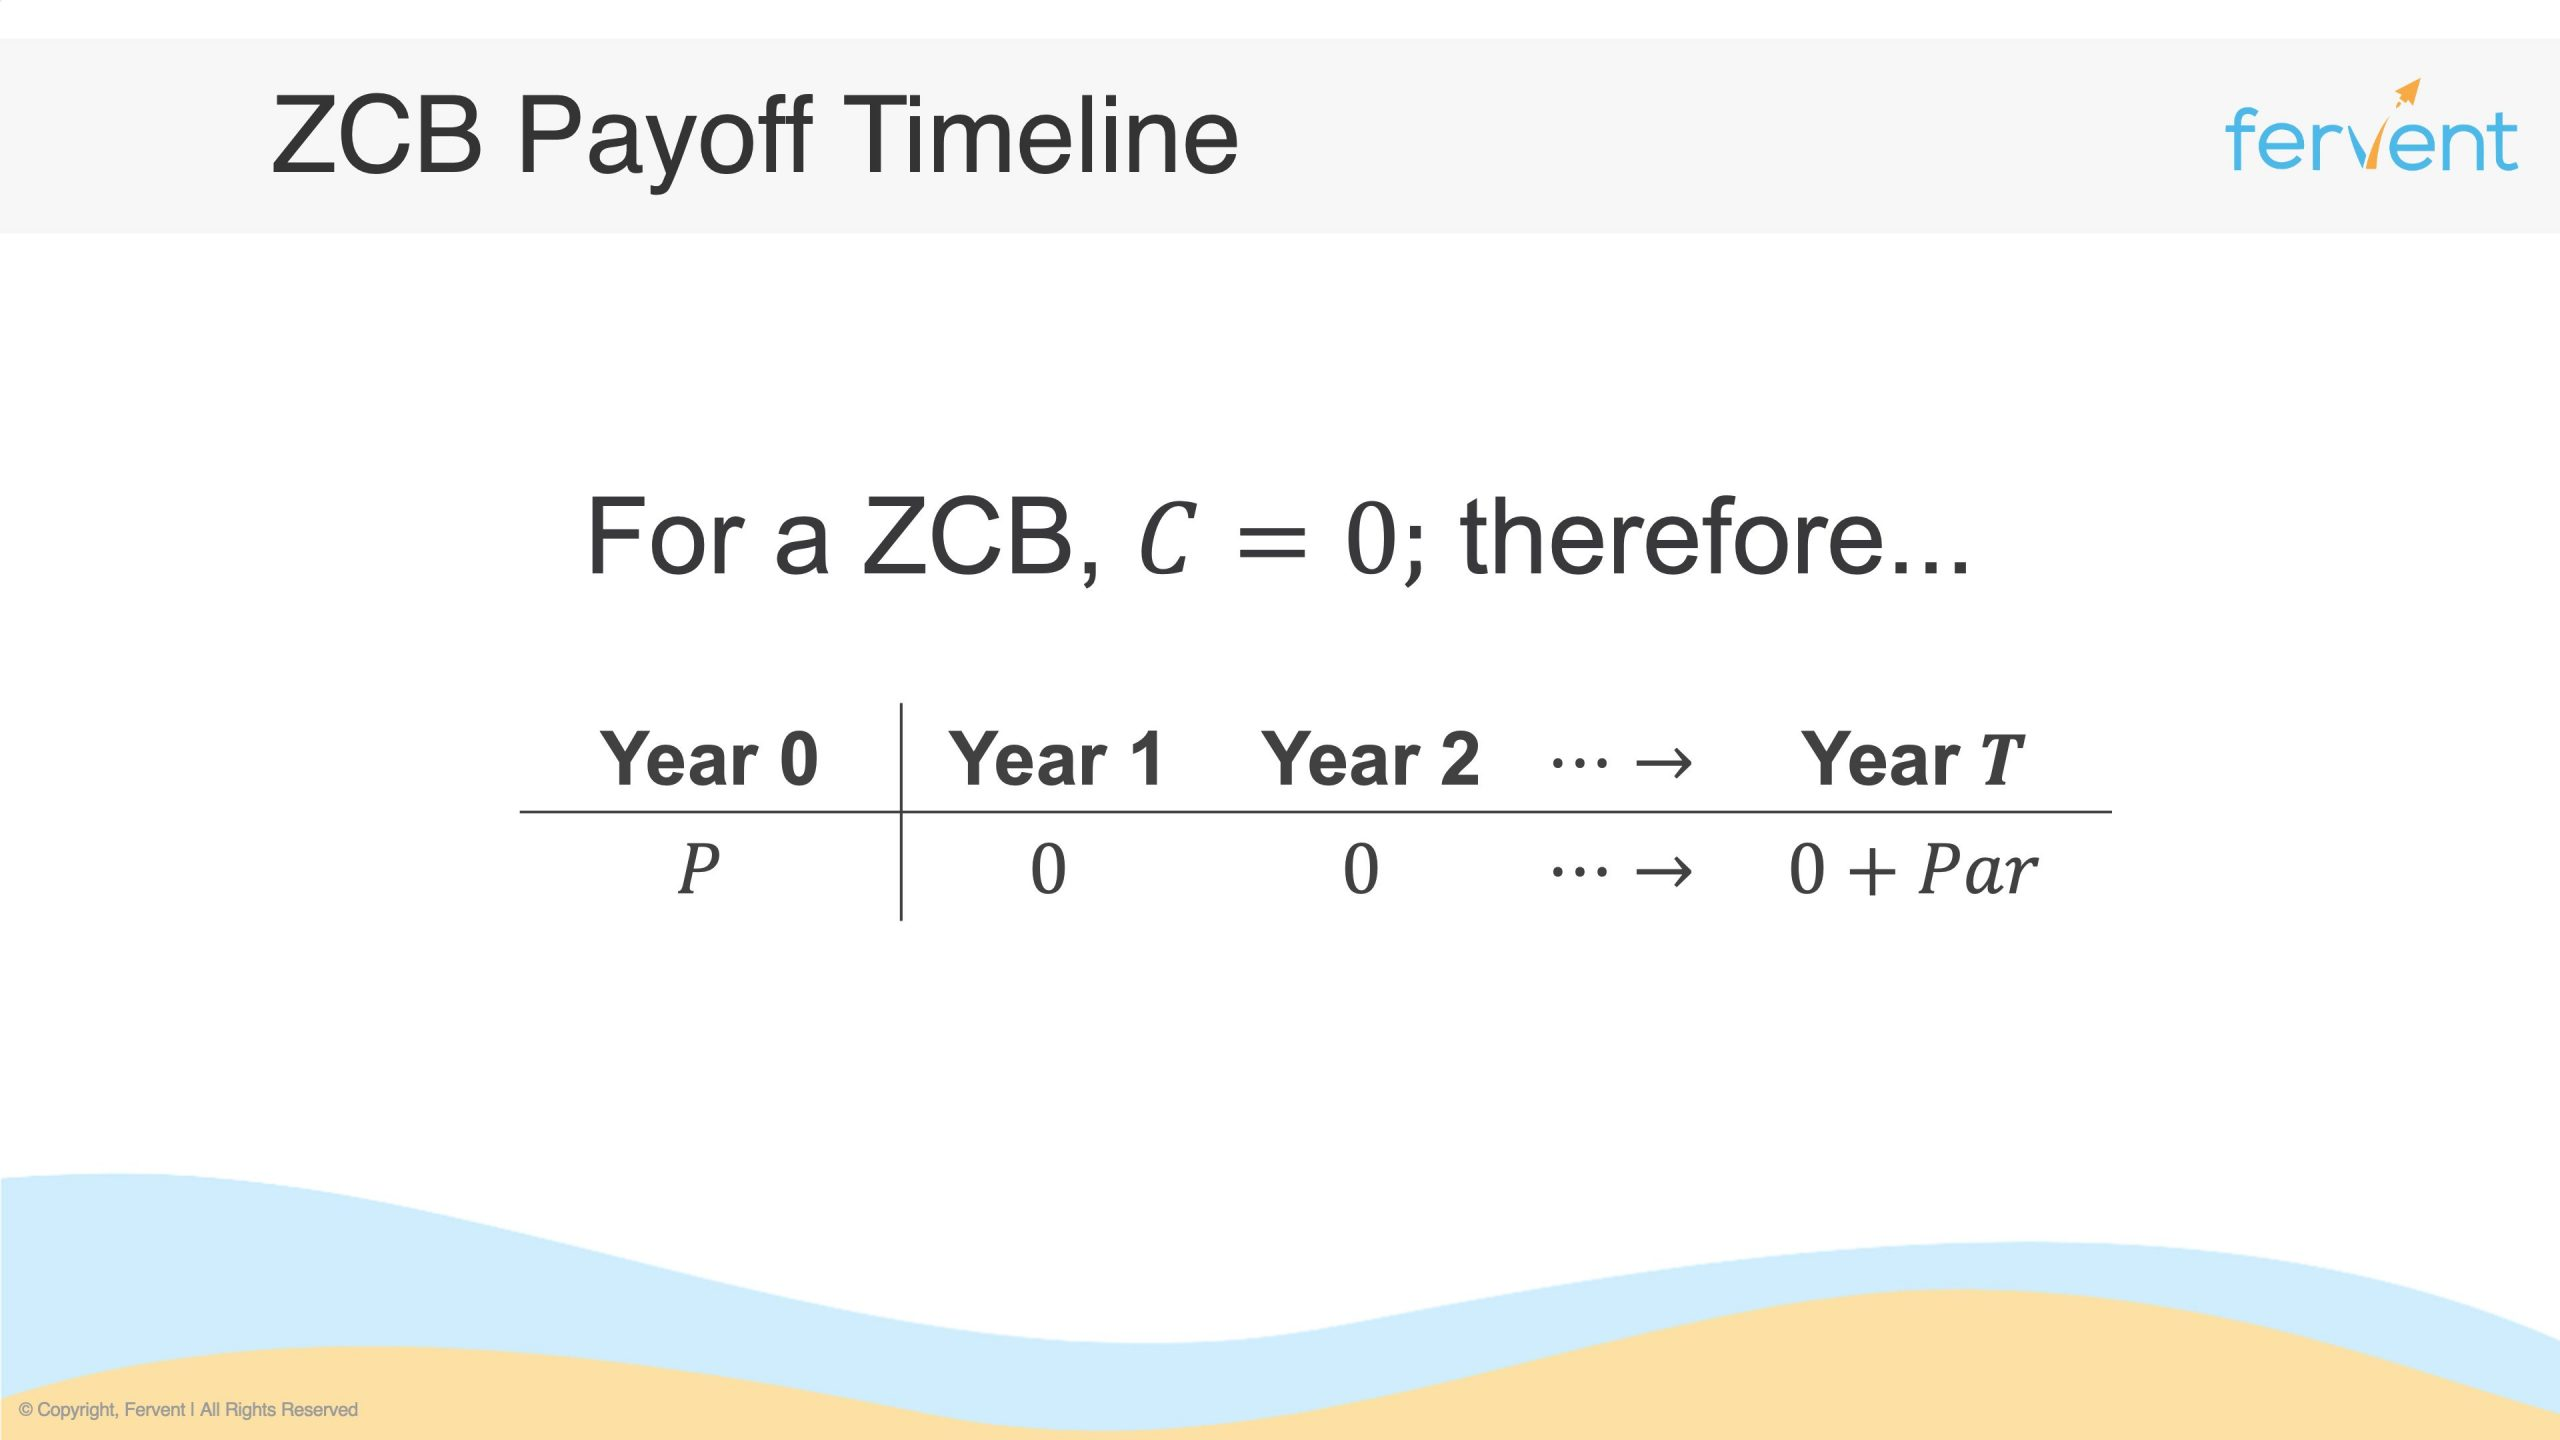 Slide showcasing the timeline of payoffs for a zero coupon bond